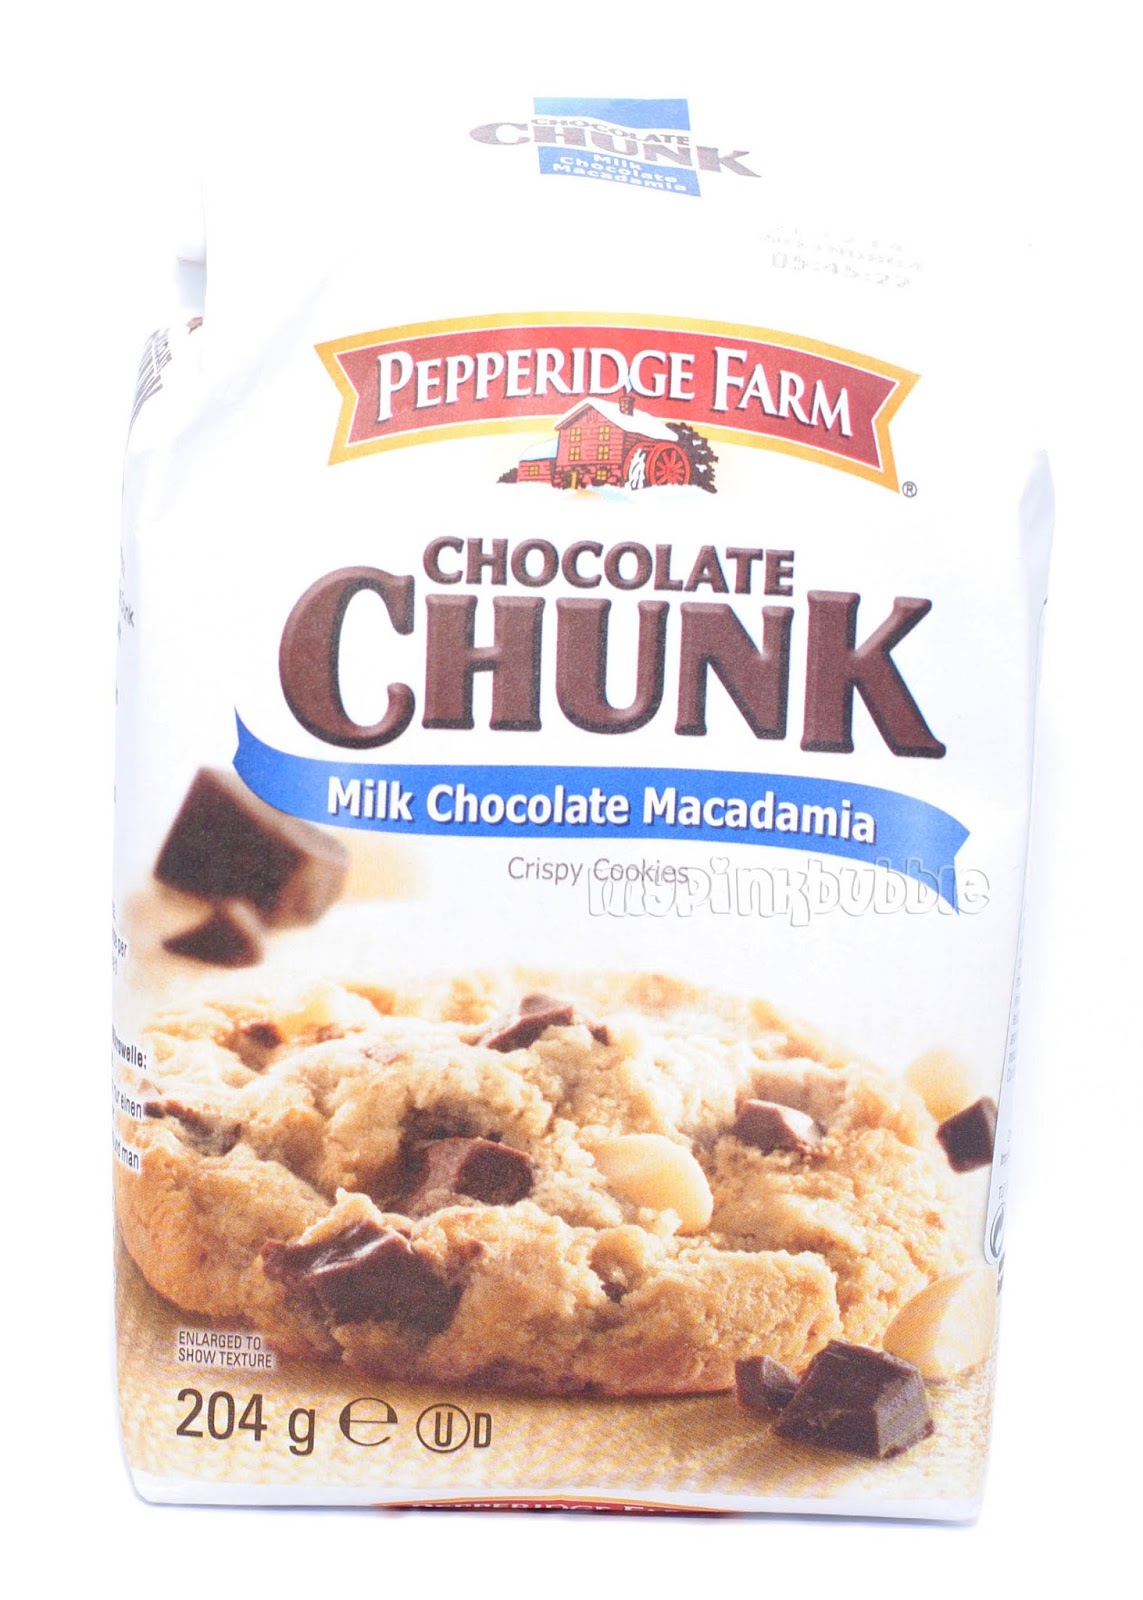 Pepperidge Farm milk chocolate macadamia